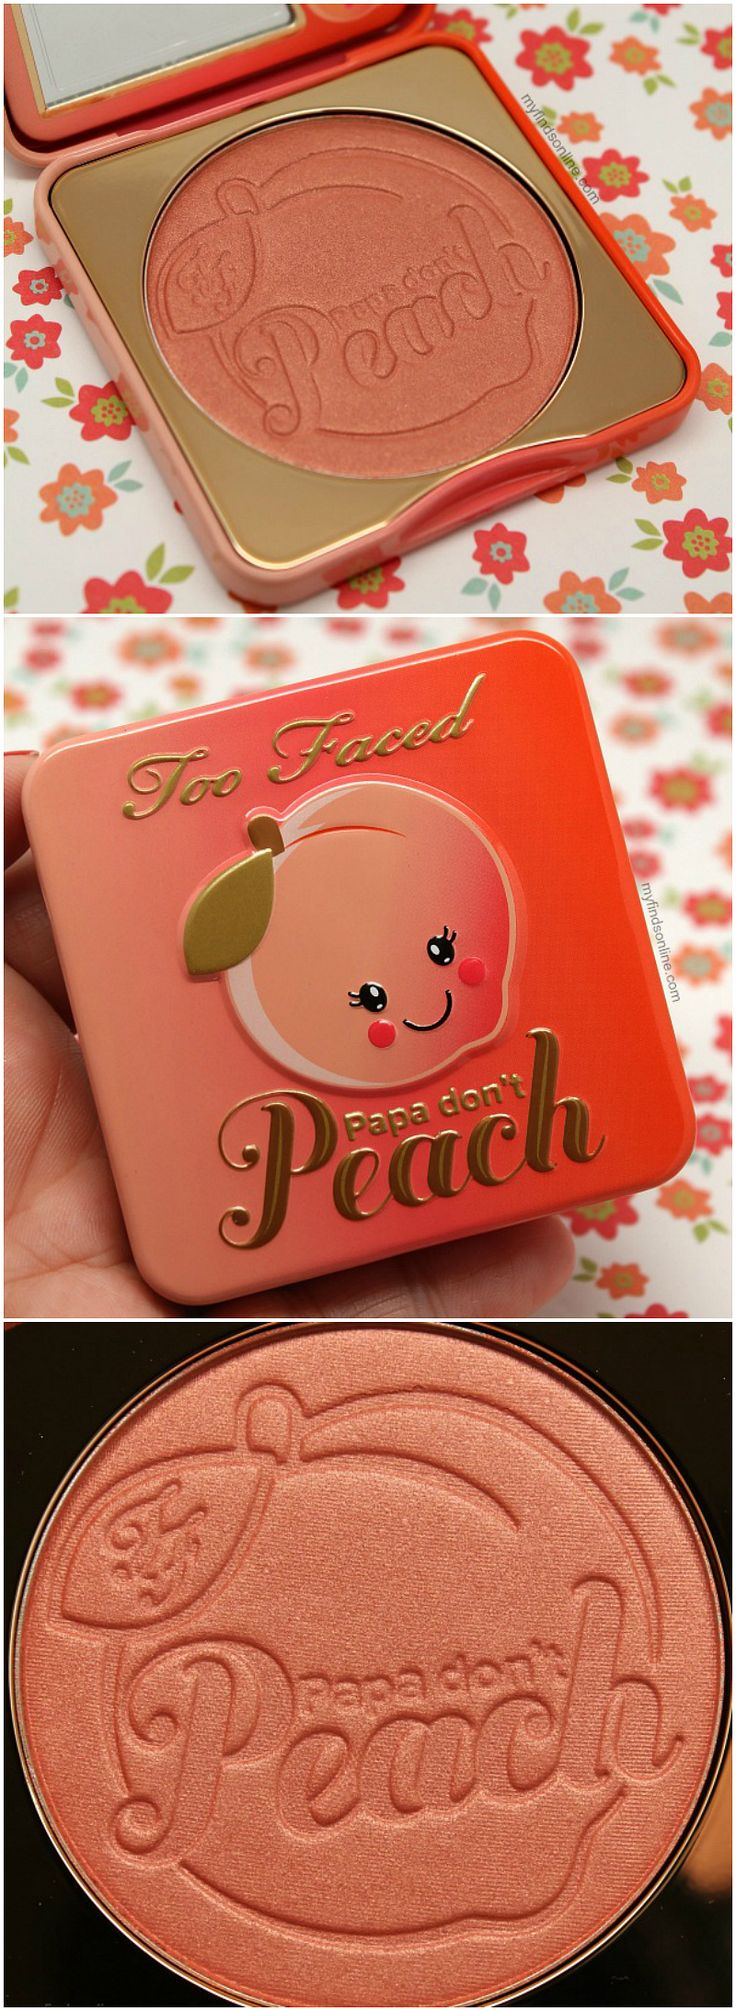 Too Faced Papa Don't Peach Blush / myfindsonline.com